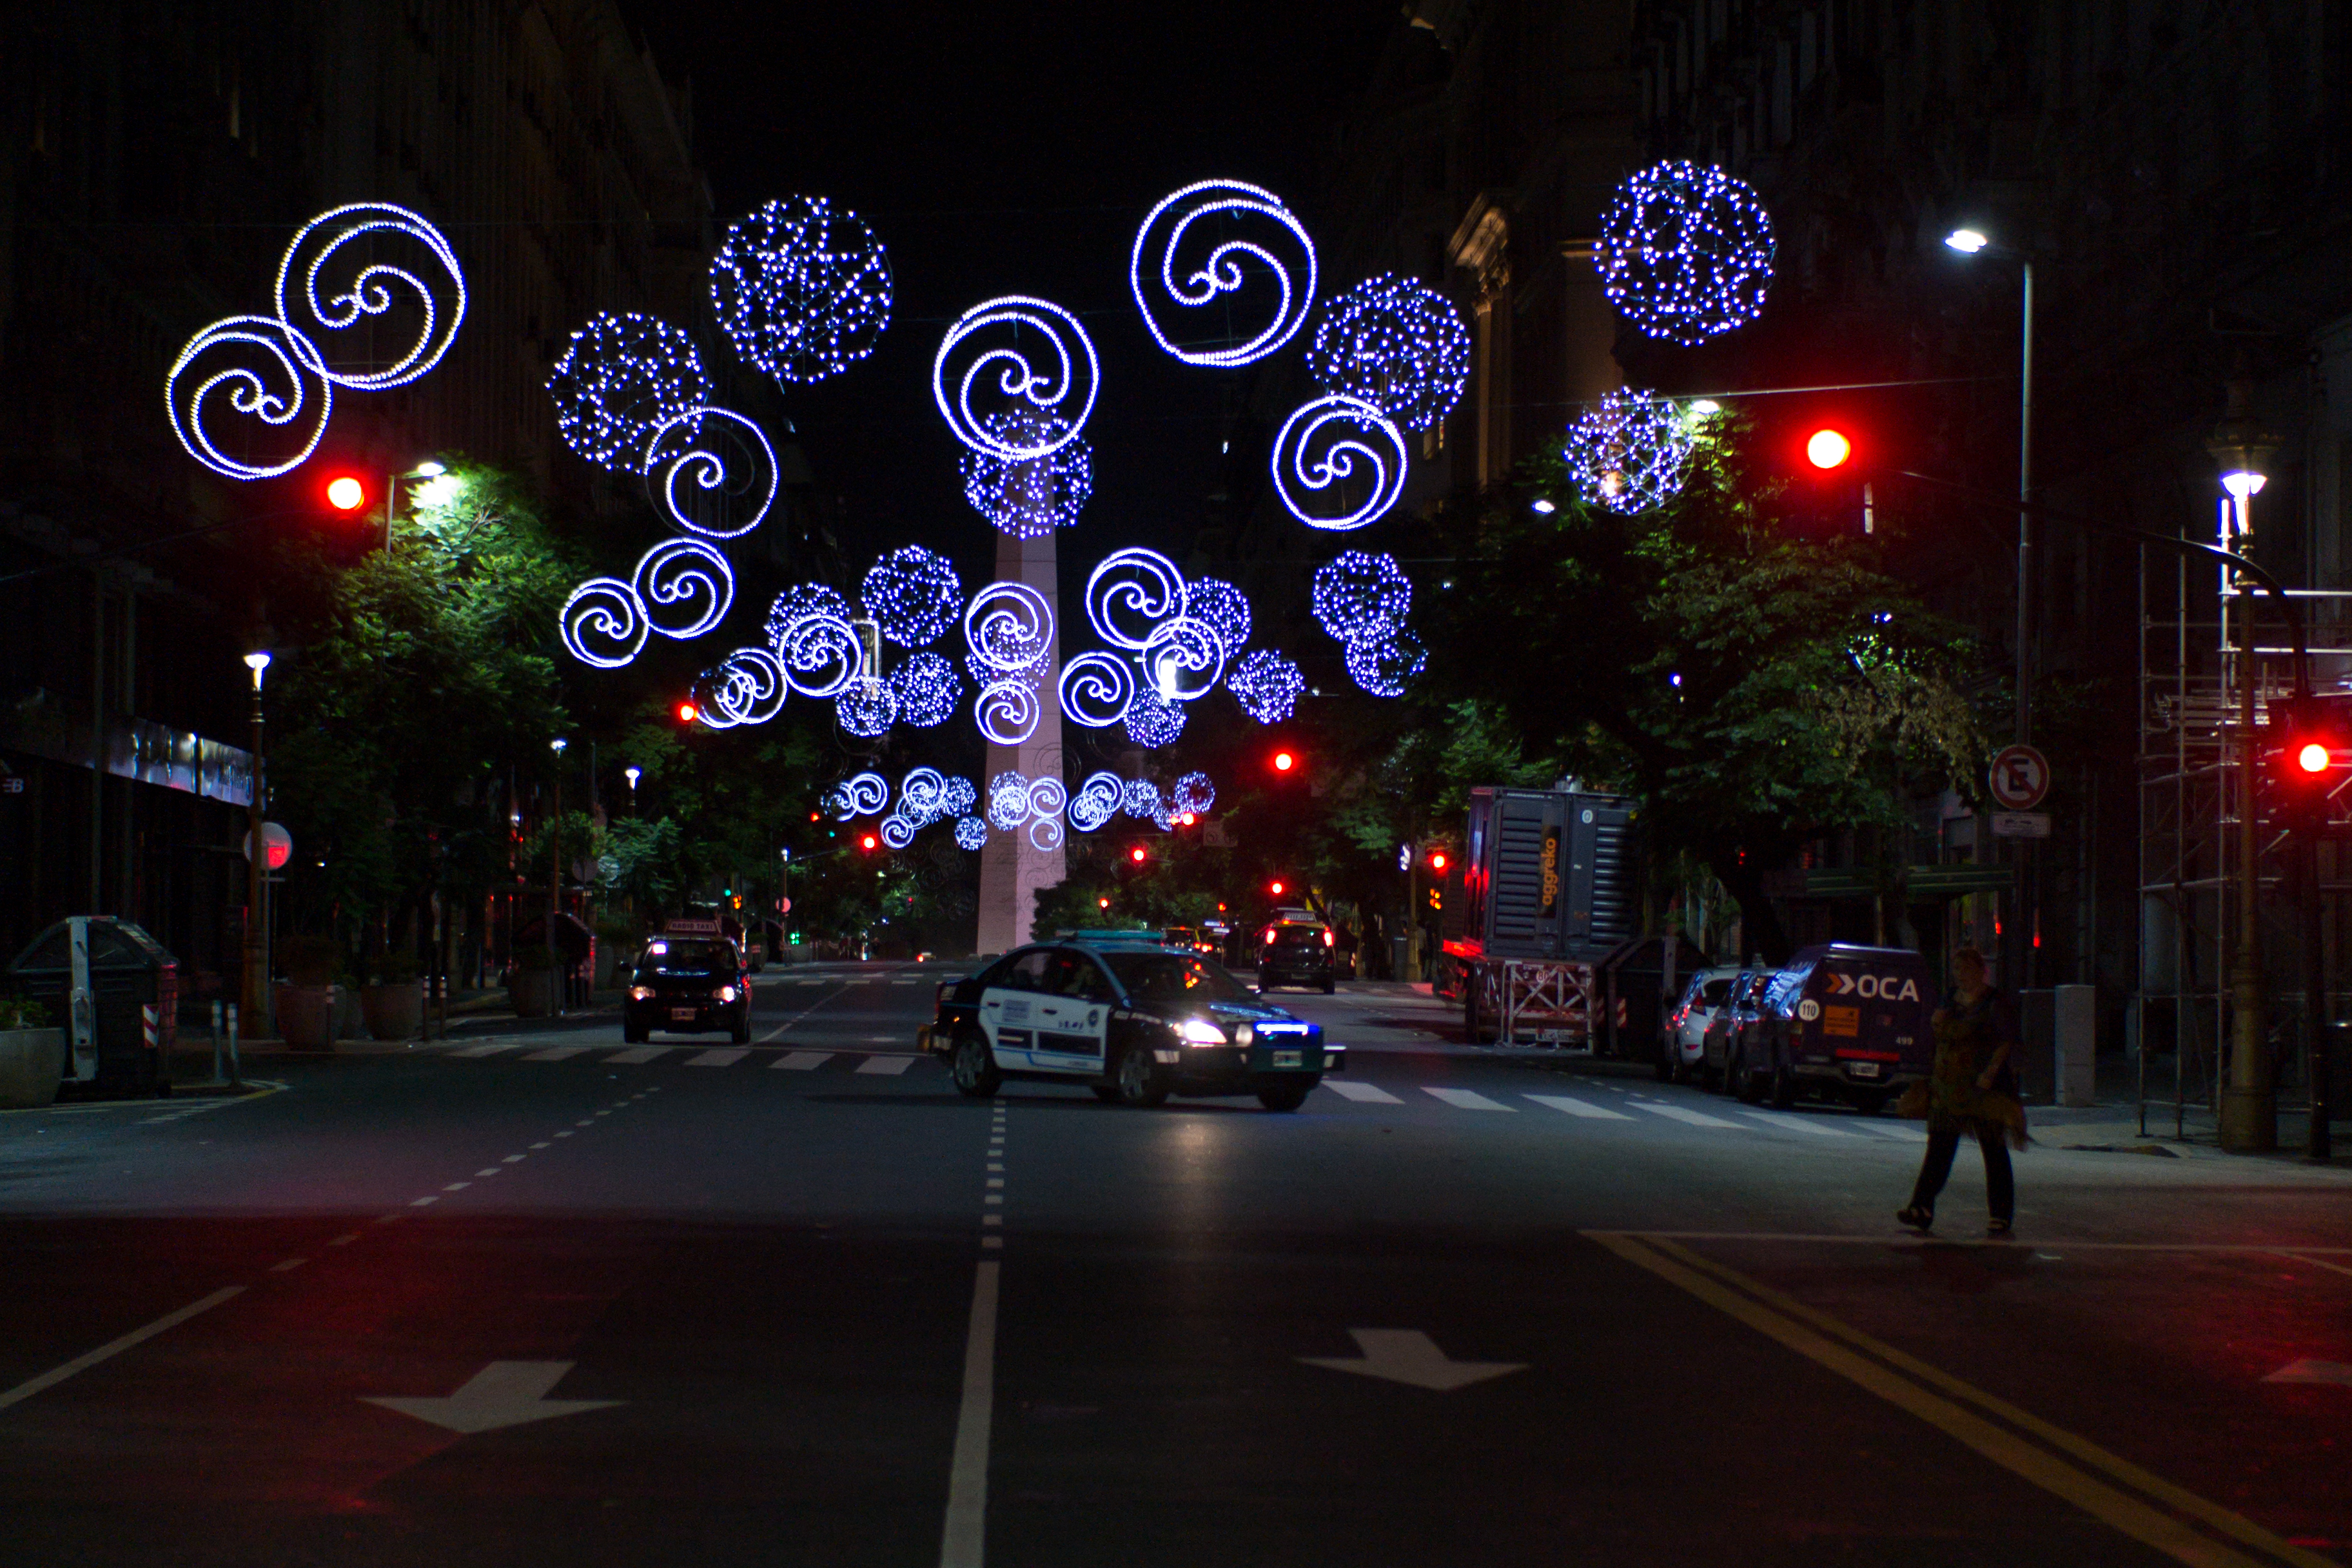 Lights in Buenos Aires